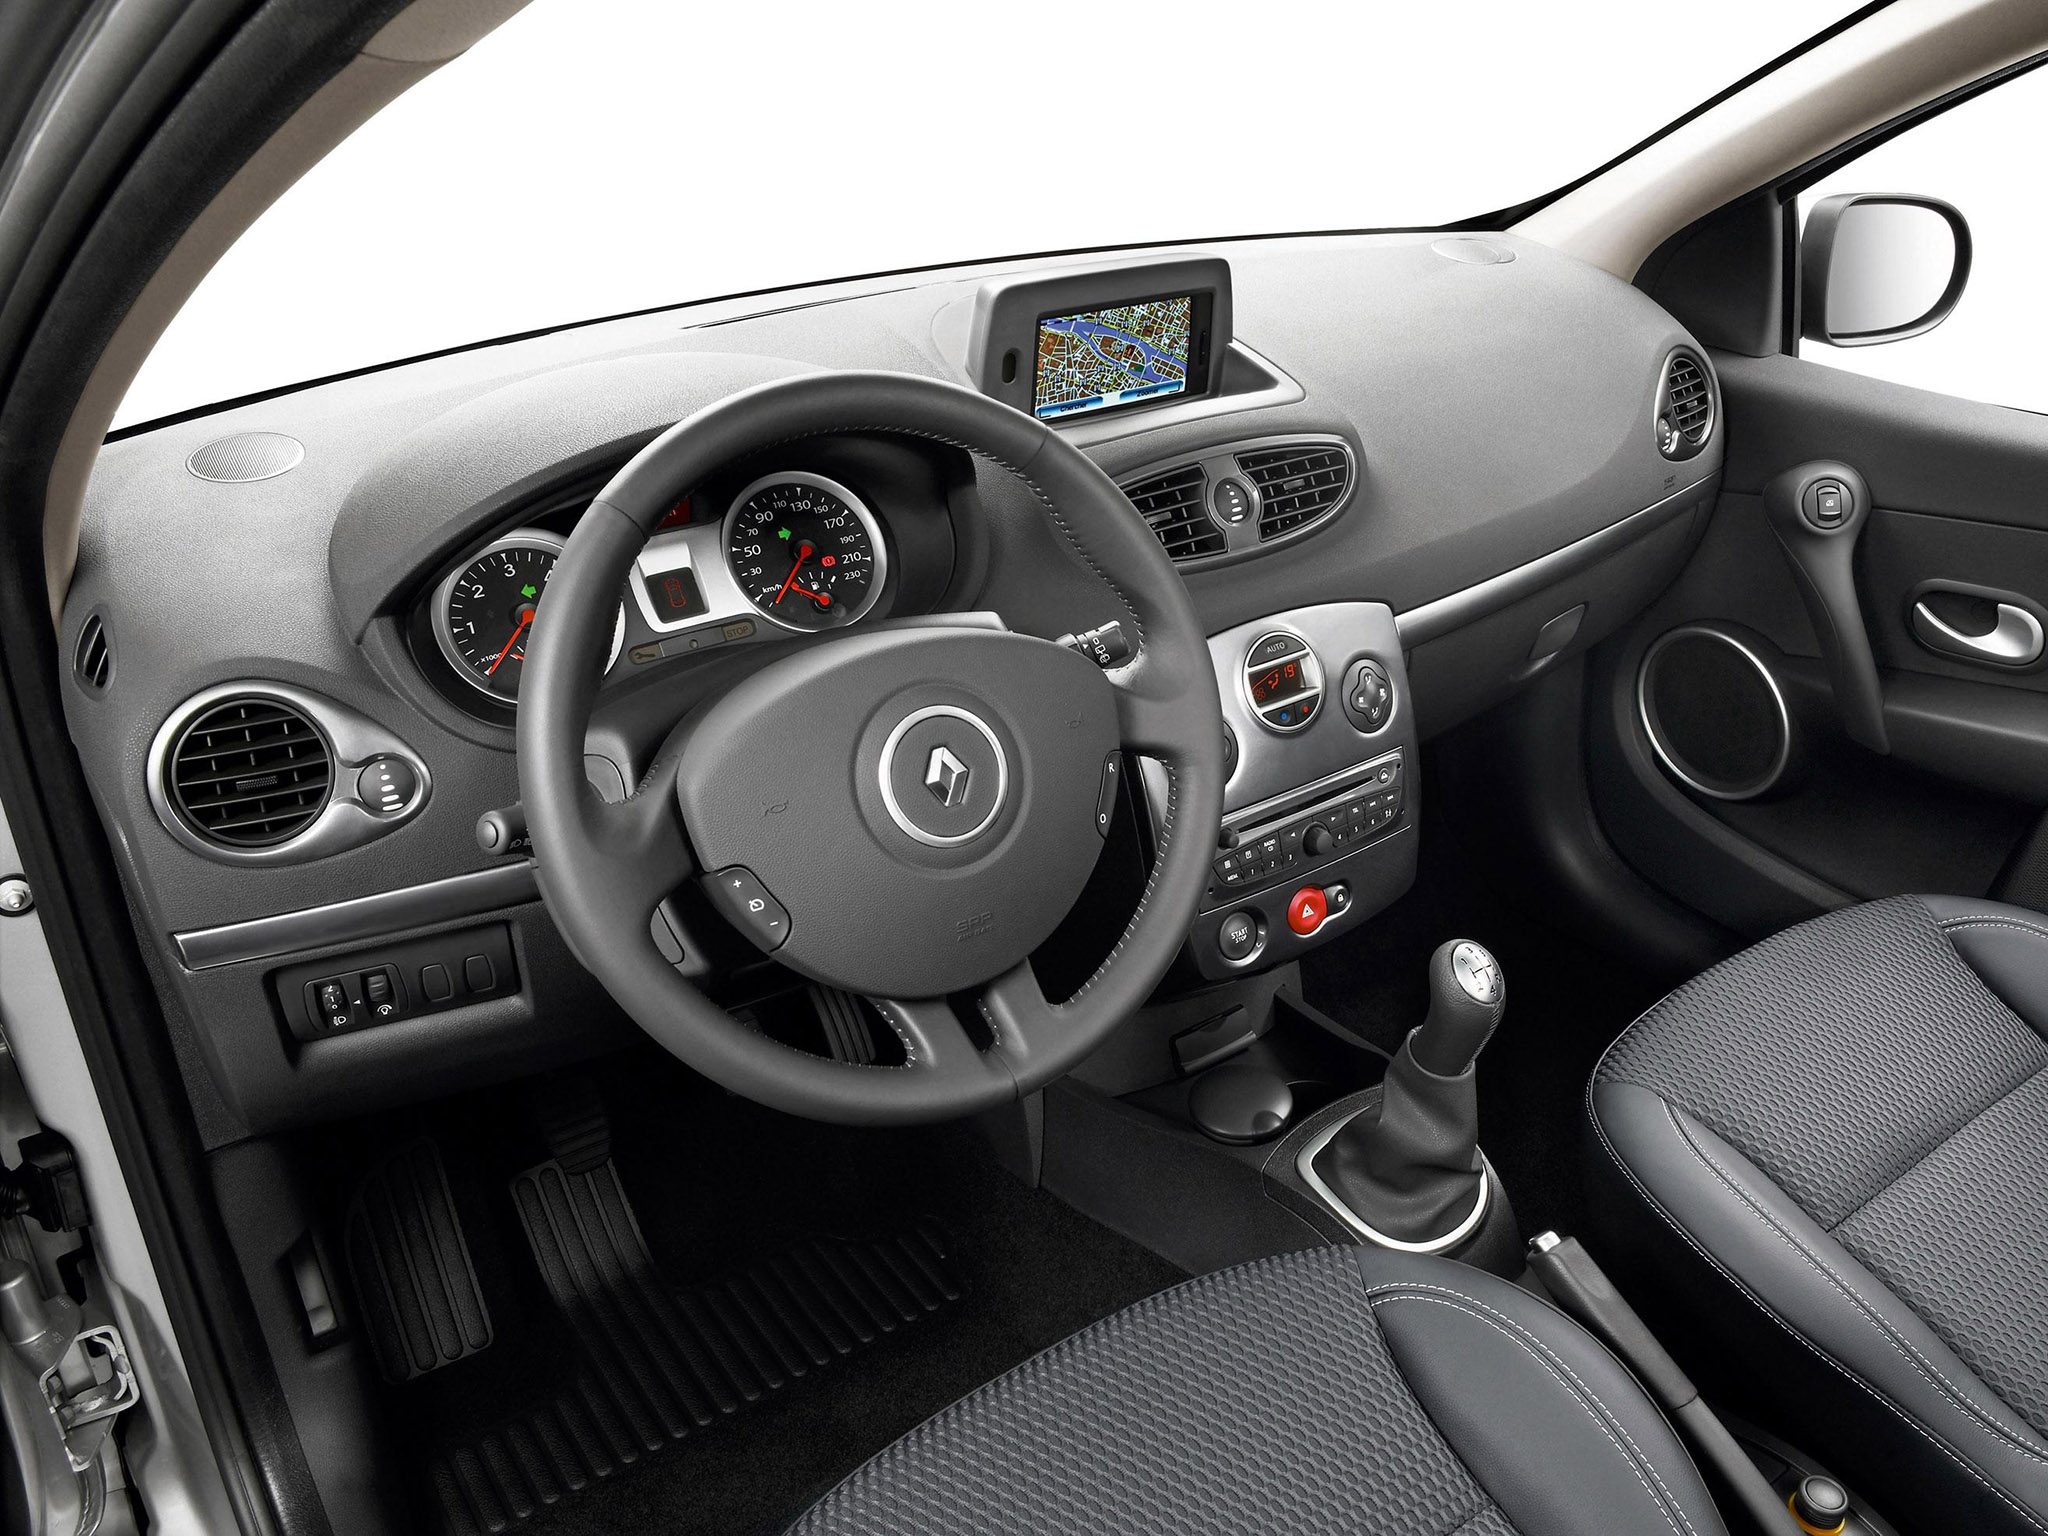 renault clio 20th limited edition 2010 renault clio 20th limited edition 2010 photo 01 car in. Black Bedroom Furniture Sets. Home Design Ideas